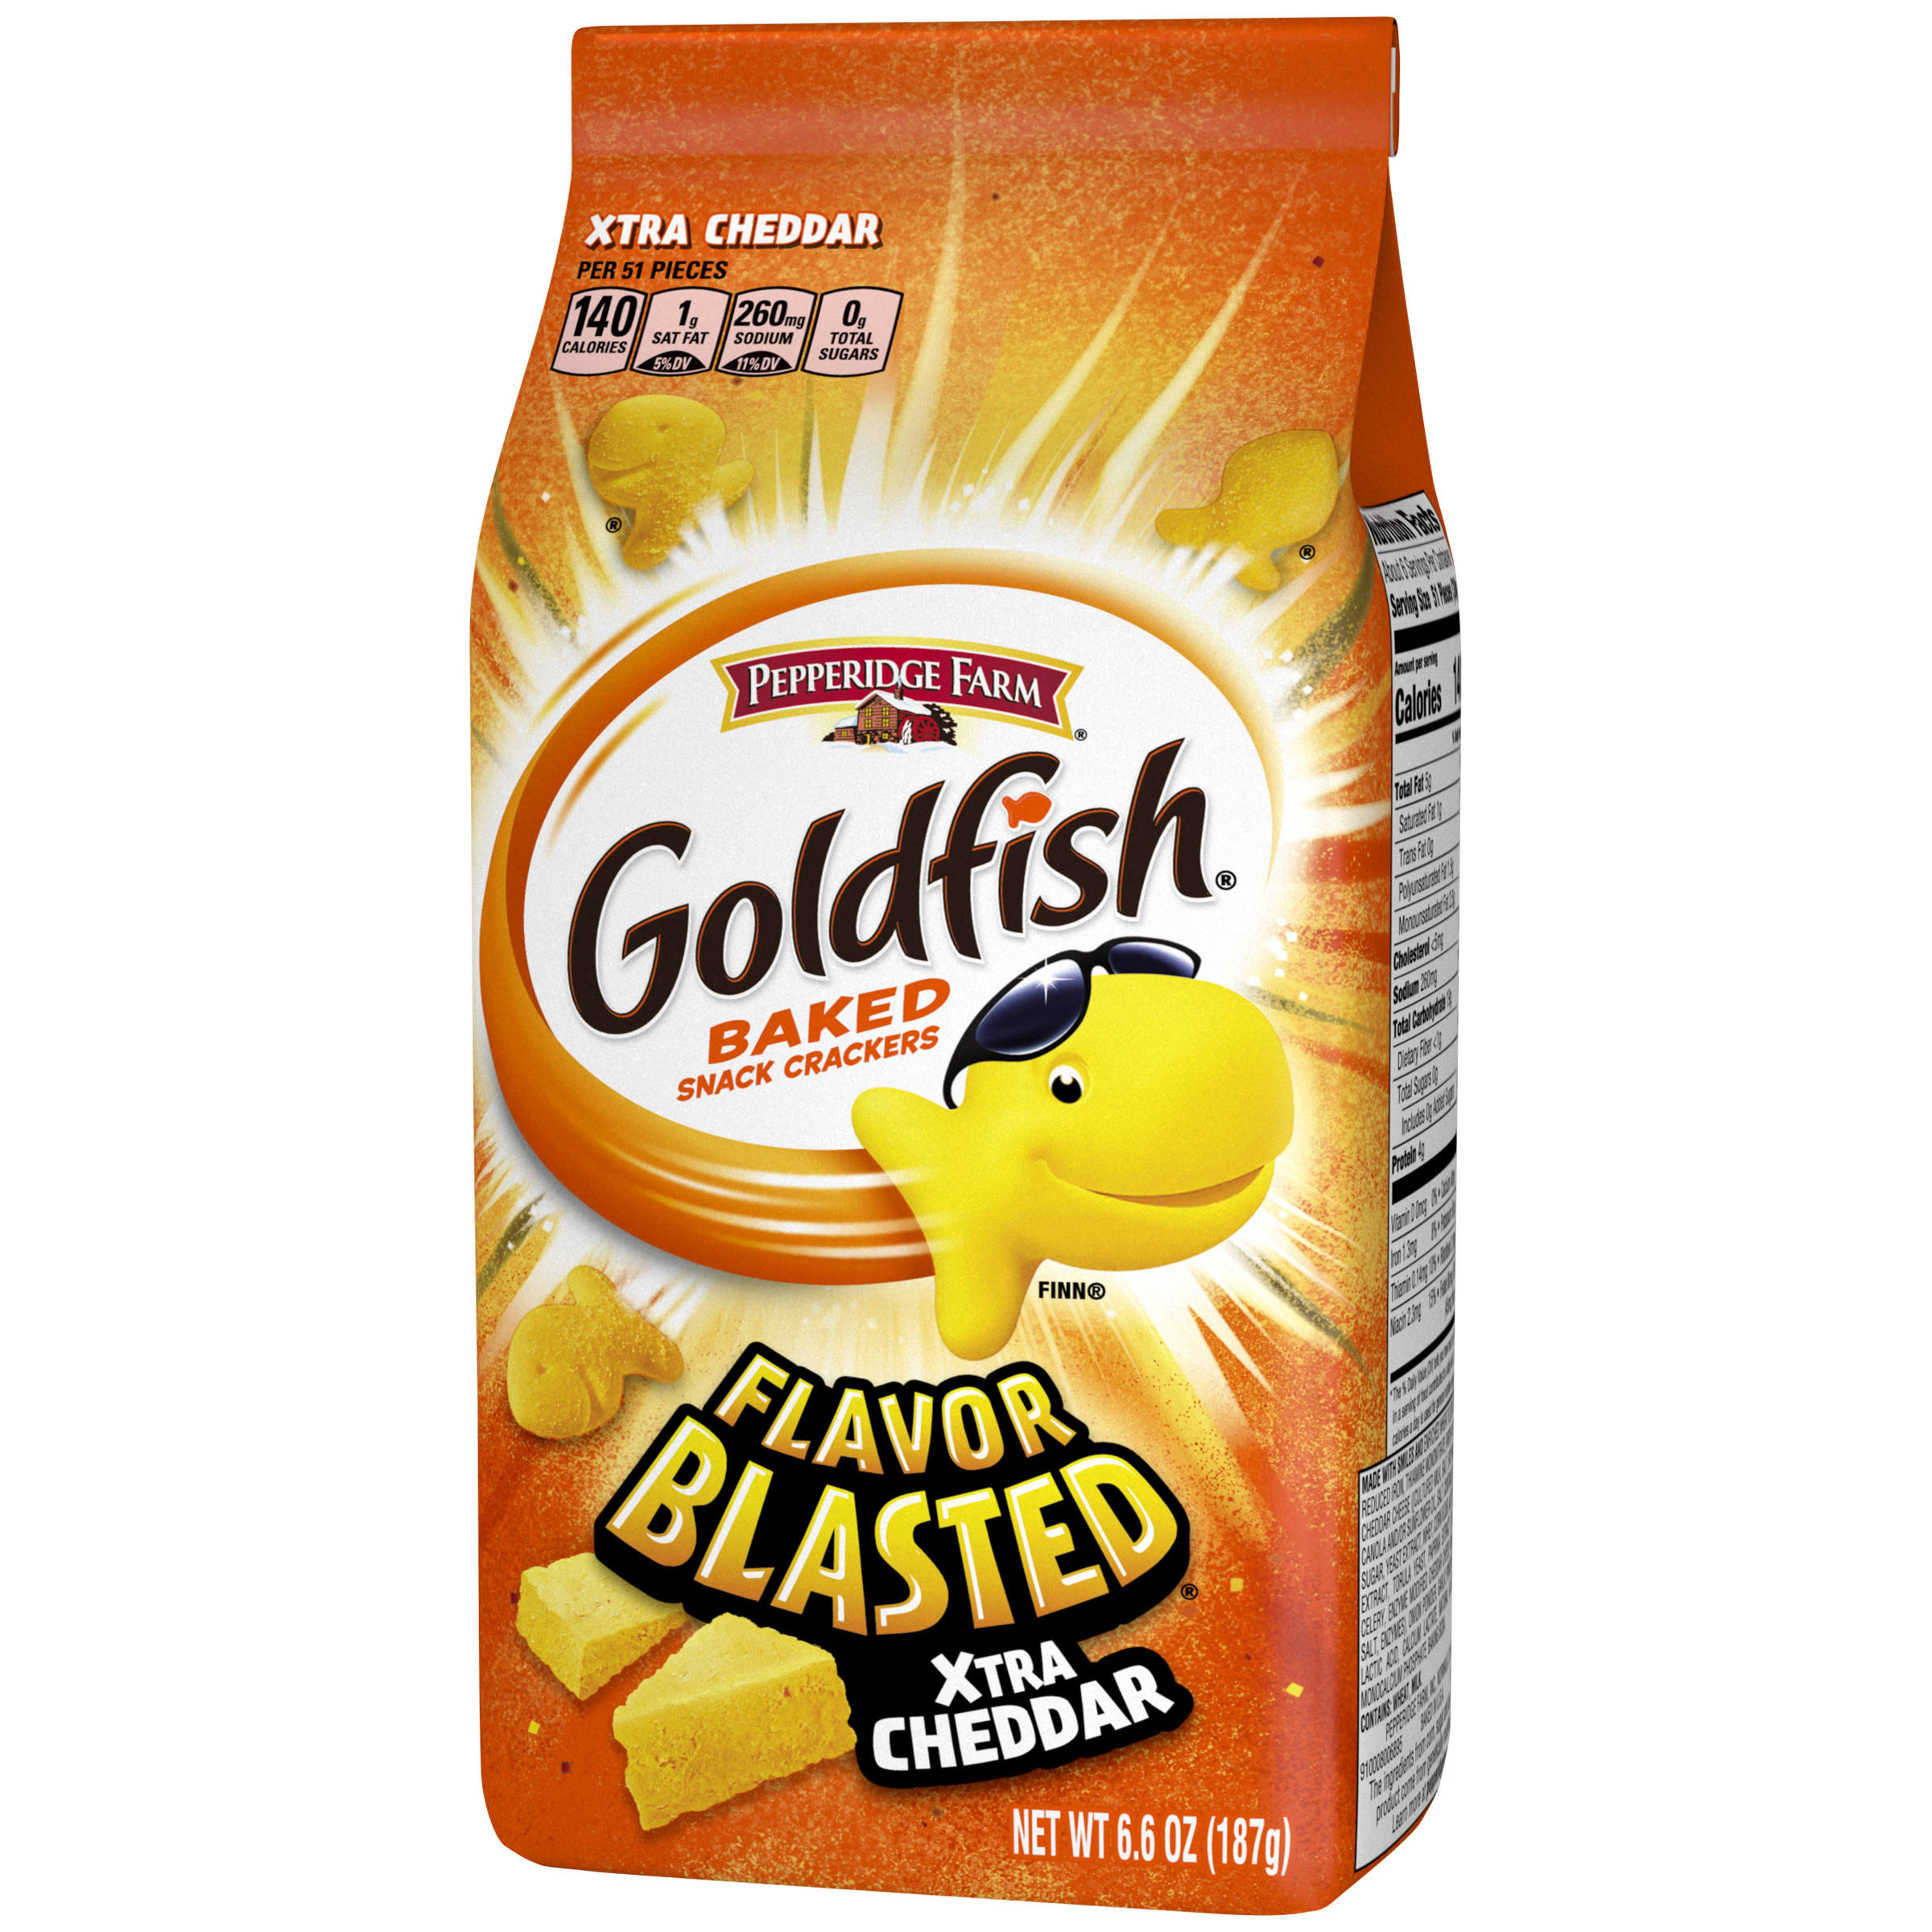 Pepperidge Farm Goldfish Flavor Blasted - Xtra Cheddar, 187g